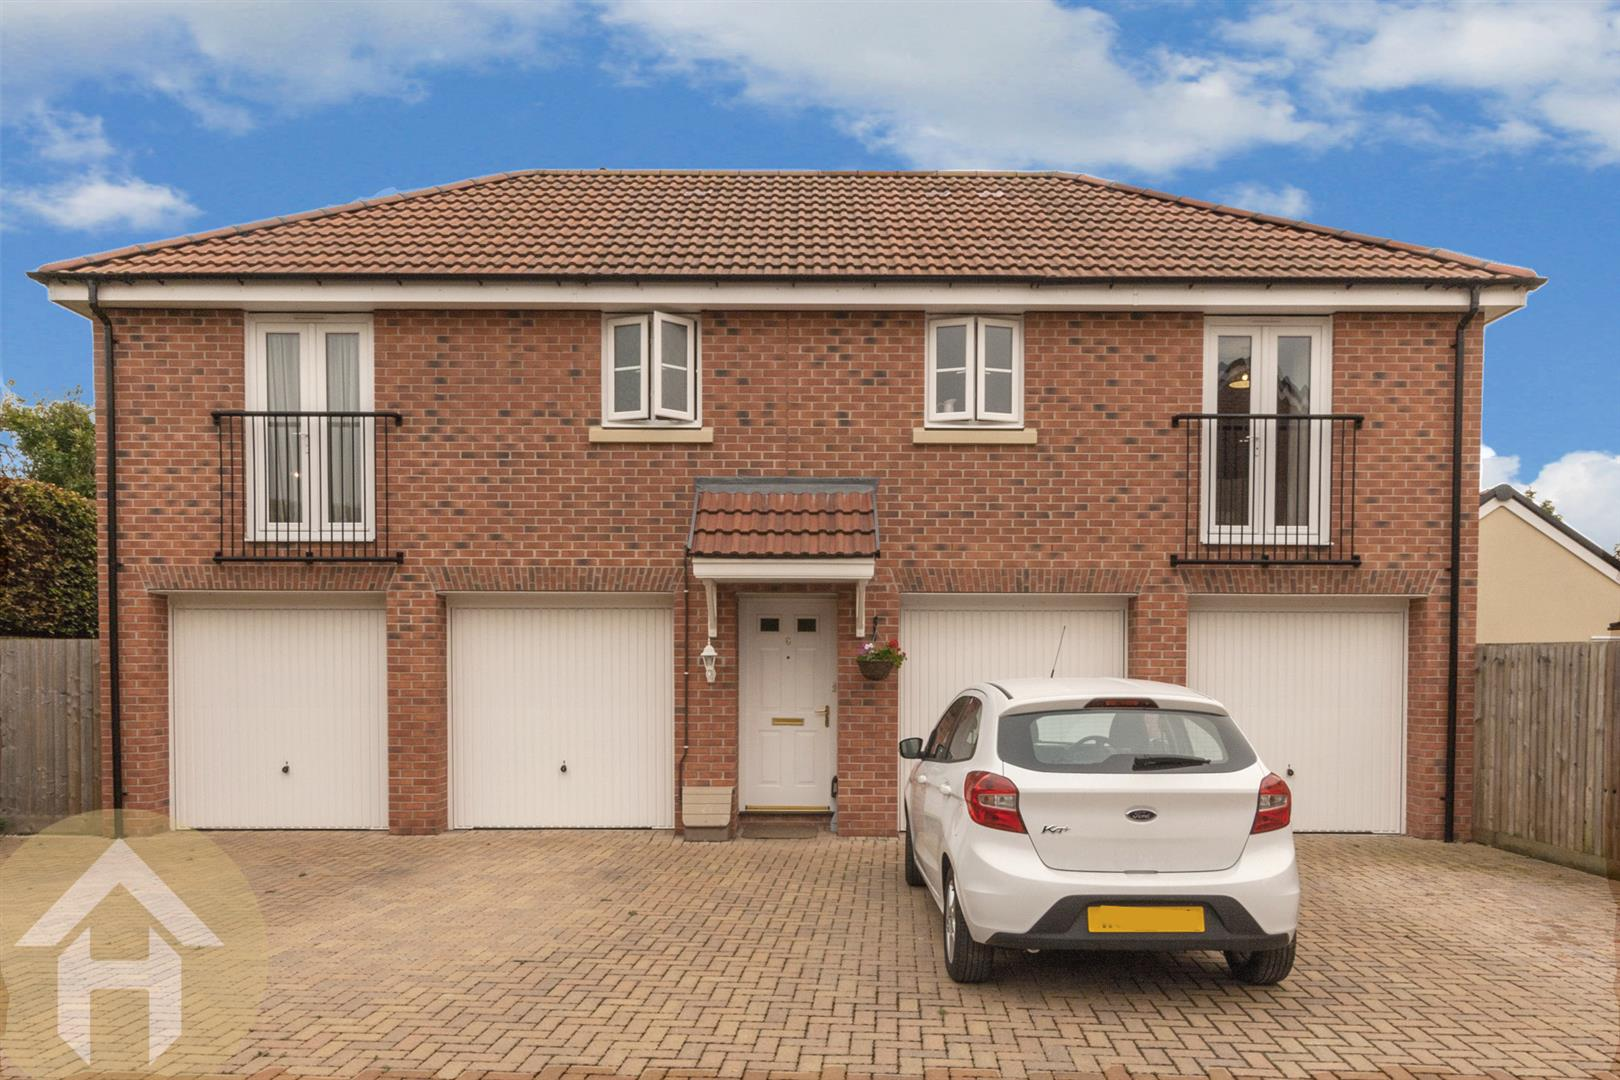 2 Bedrooms Property for sale in Buxton Way, Royal Wootton Bassett